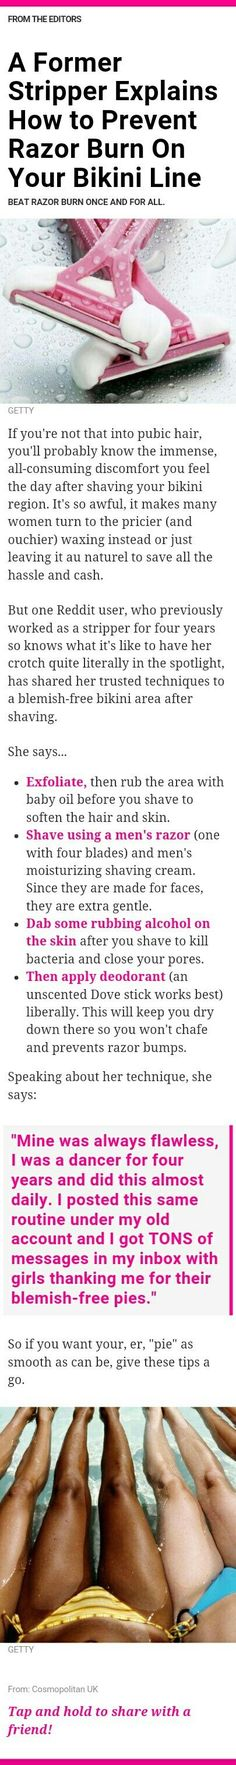 kinda good tips whatever the skin surface